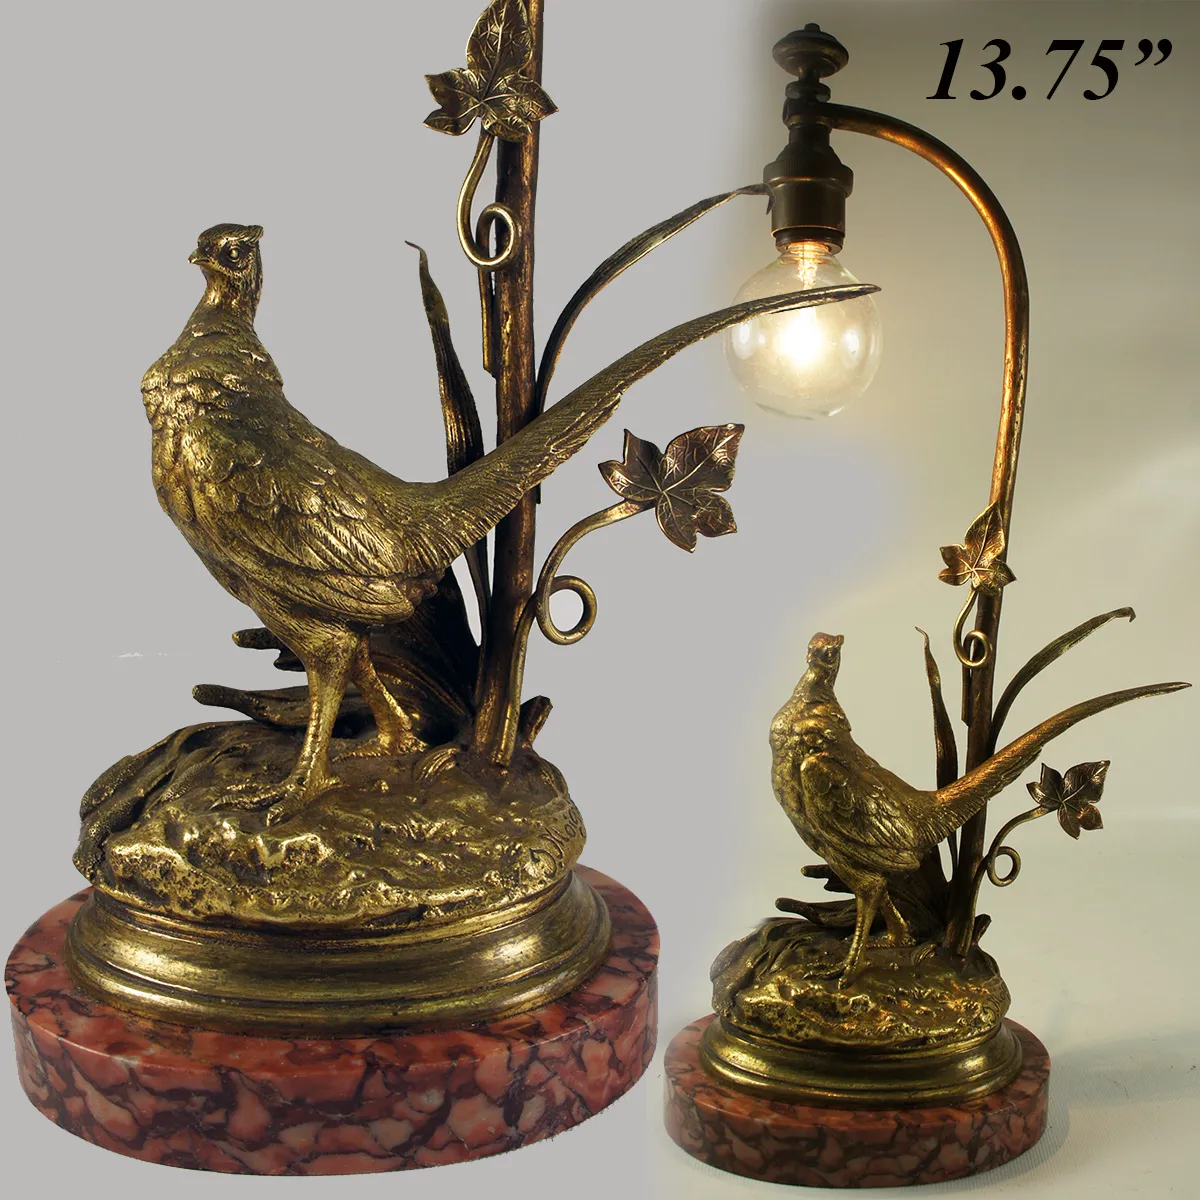 "Antique Dore Bronze Sculpture, Moignez, Marble Plinth, a 14"" Desk or Table Lamp"